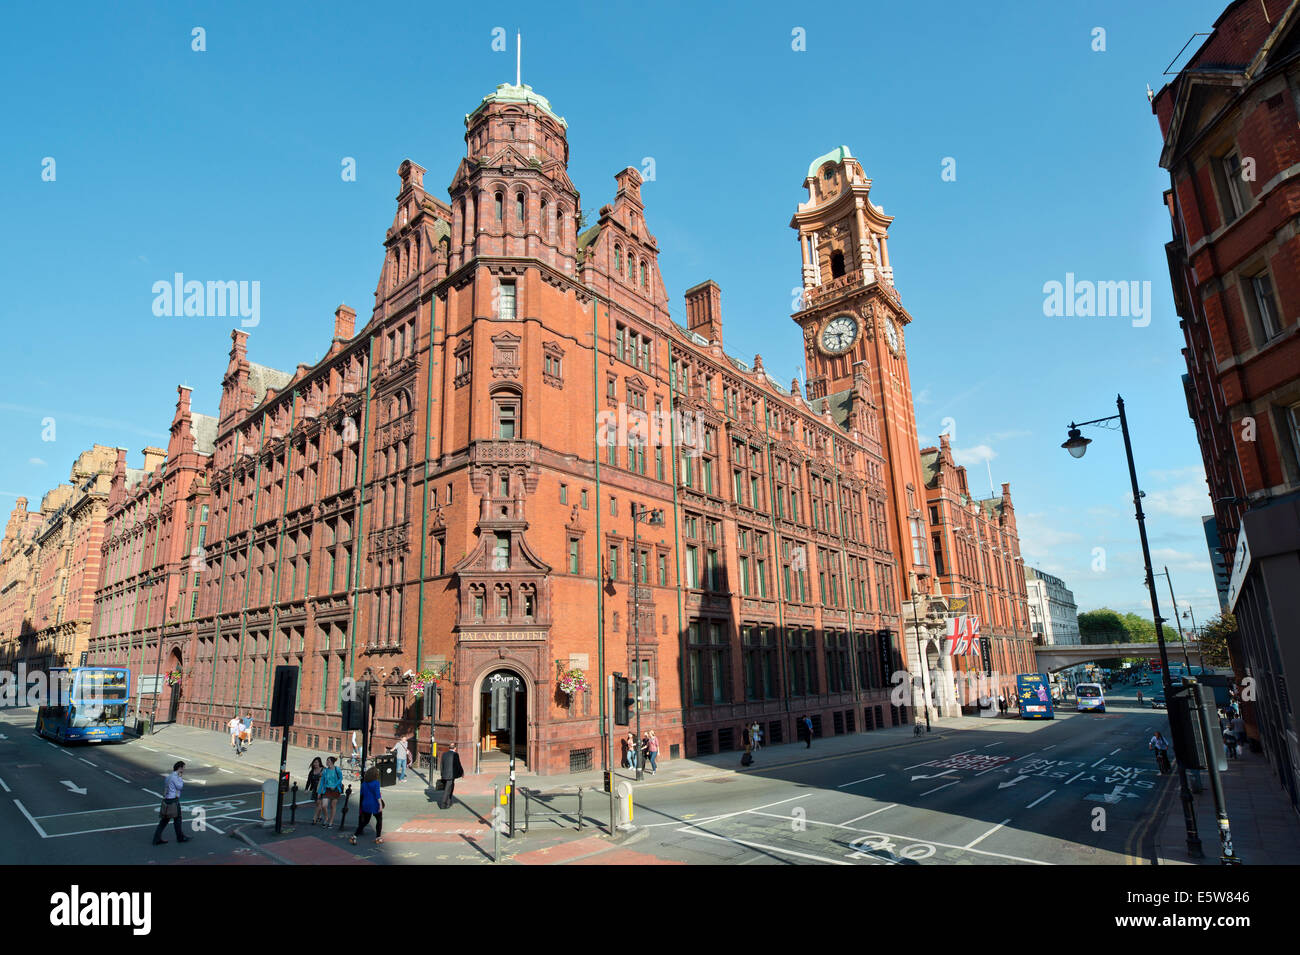 The Palace Hotel located on Oxford Road, Manchester, UK. - Stock Image